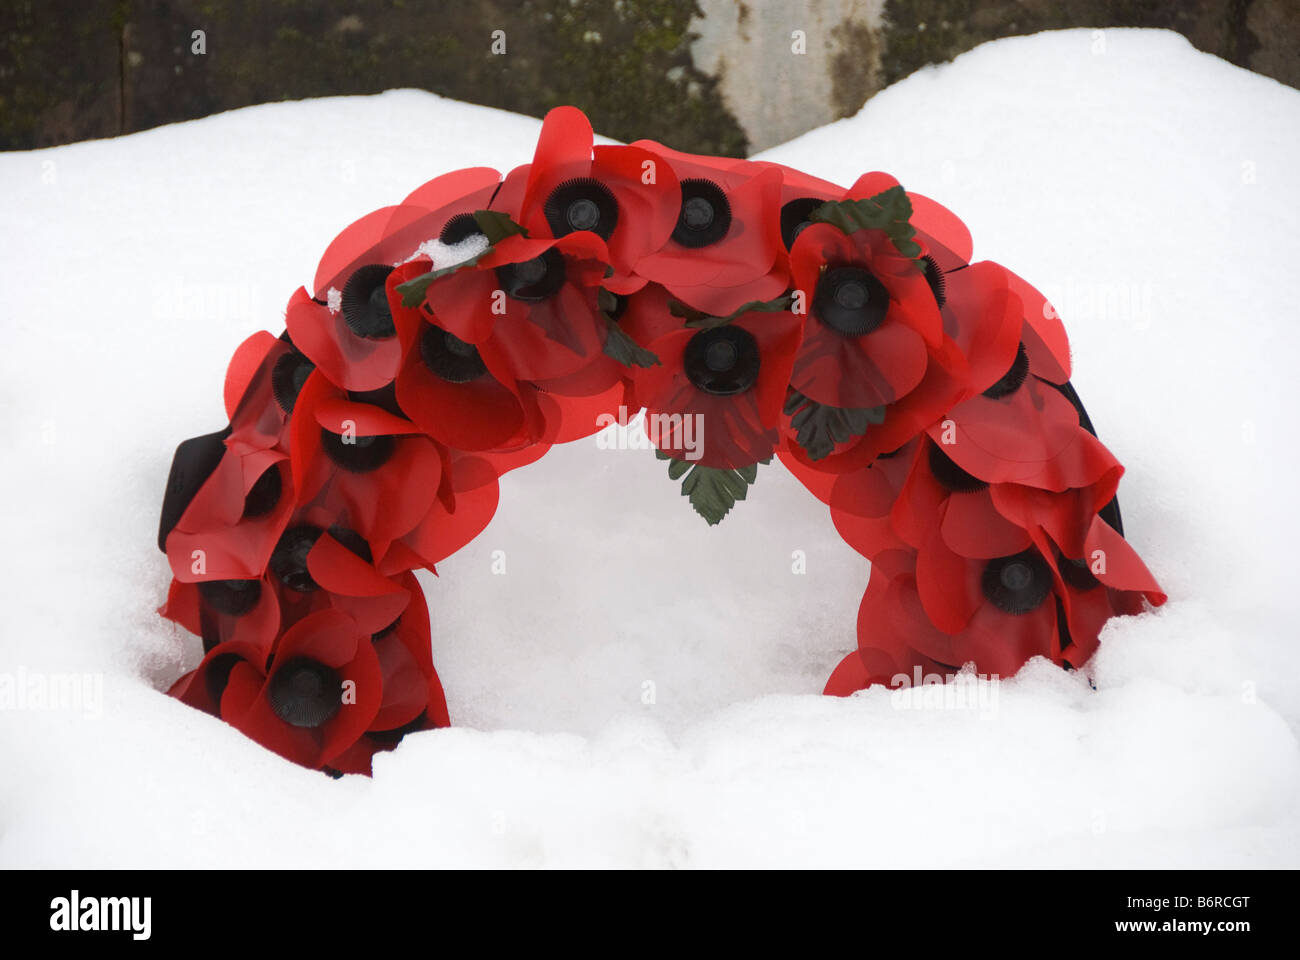 Wreath of poppies on a snow-covered war memorial, UK - Stock Image